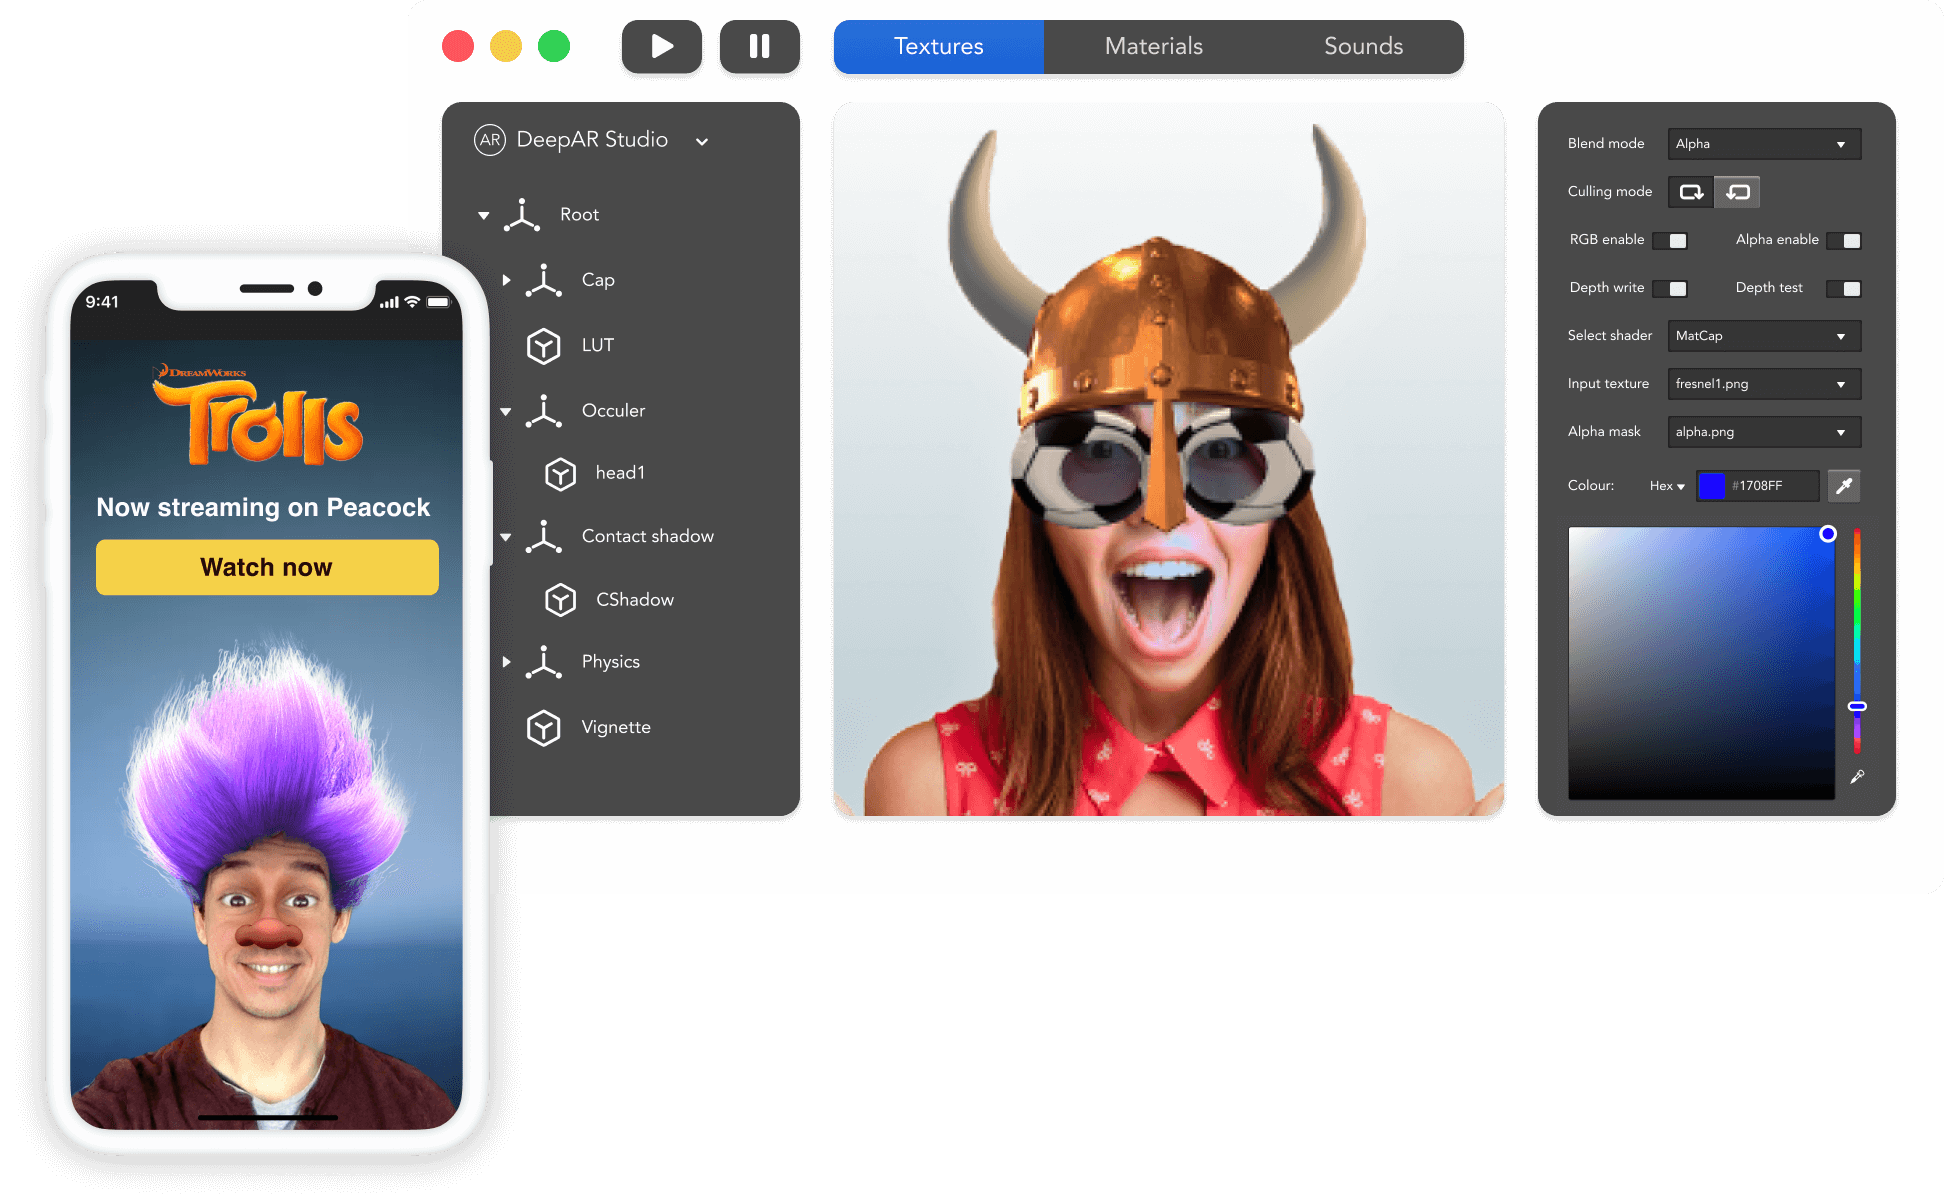 Mockups of an iPhone showing AR filters, and a browser window showing the DeepAR studio